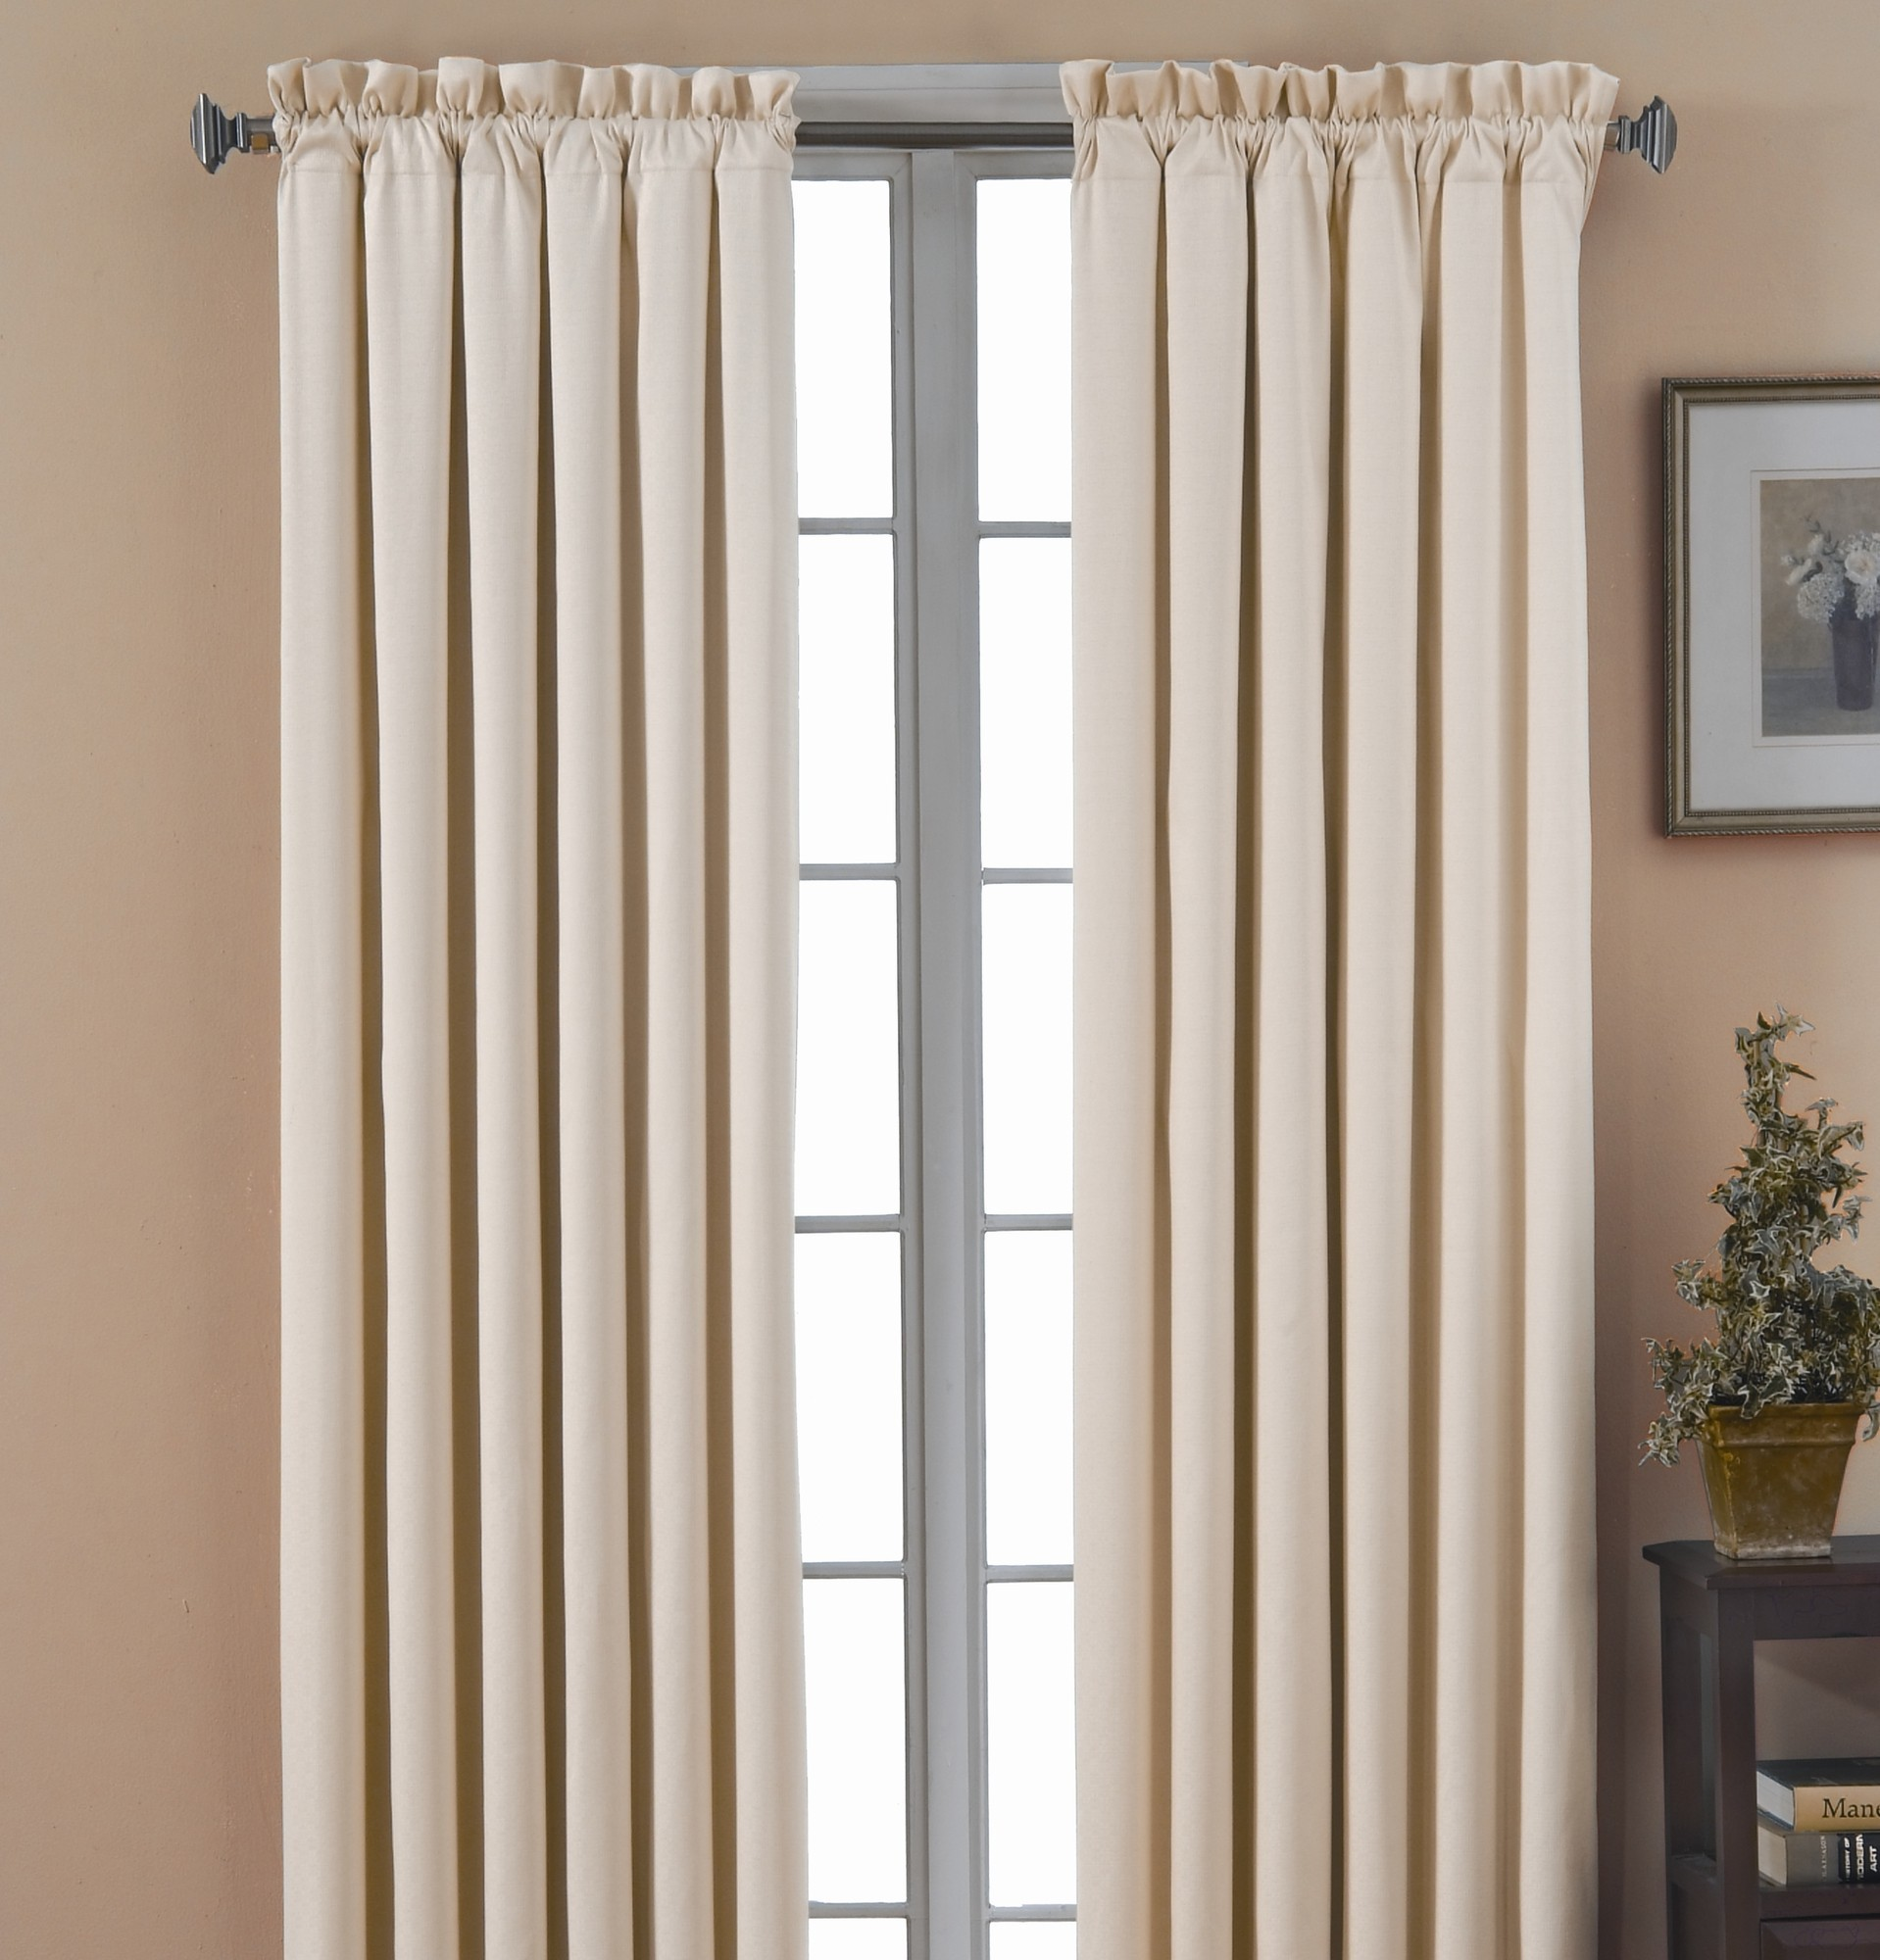 brilliant blackout blind shades reducing blinds ikea for curtain noise ideas acoustical target from soundproof walmart best curtains c roman teal